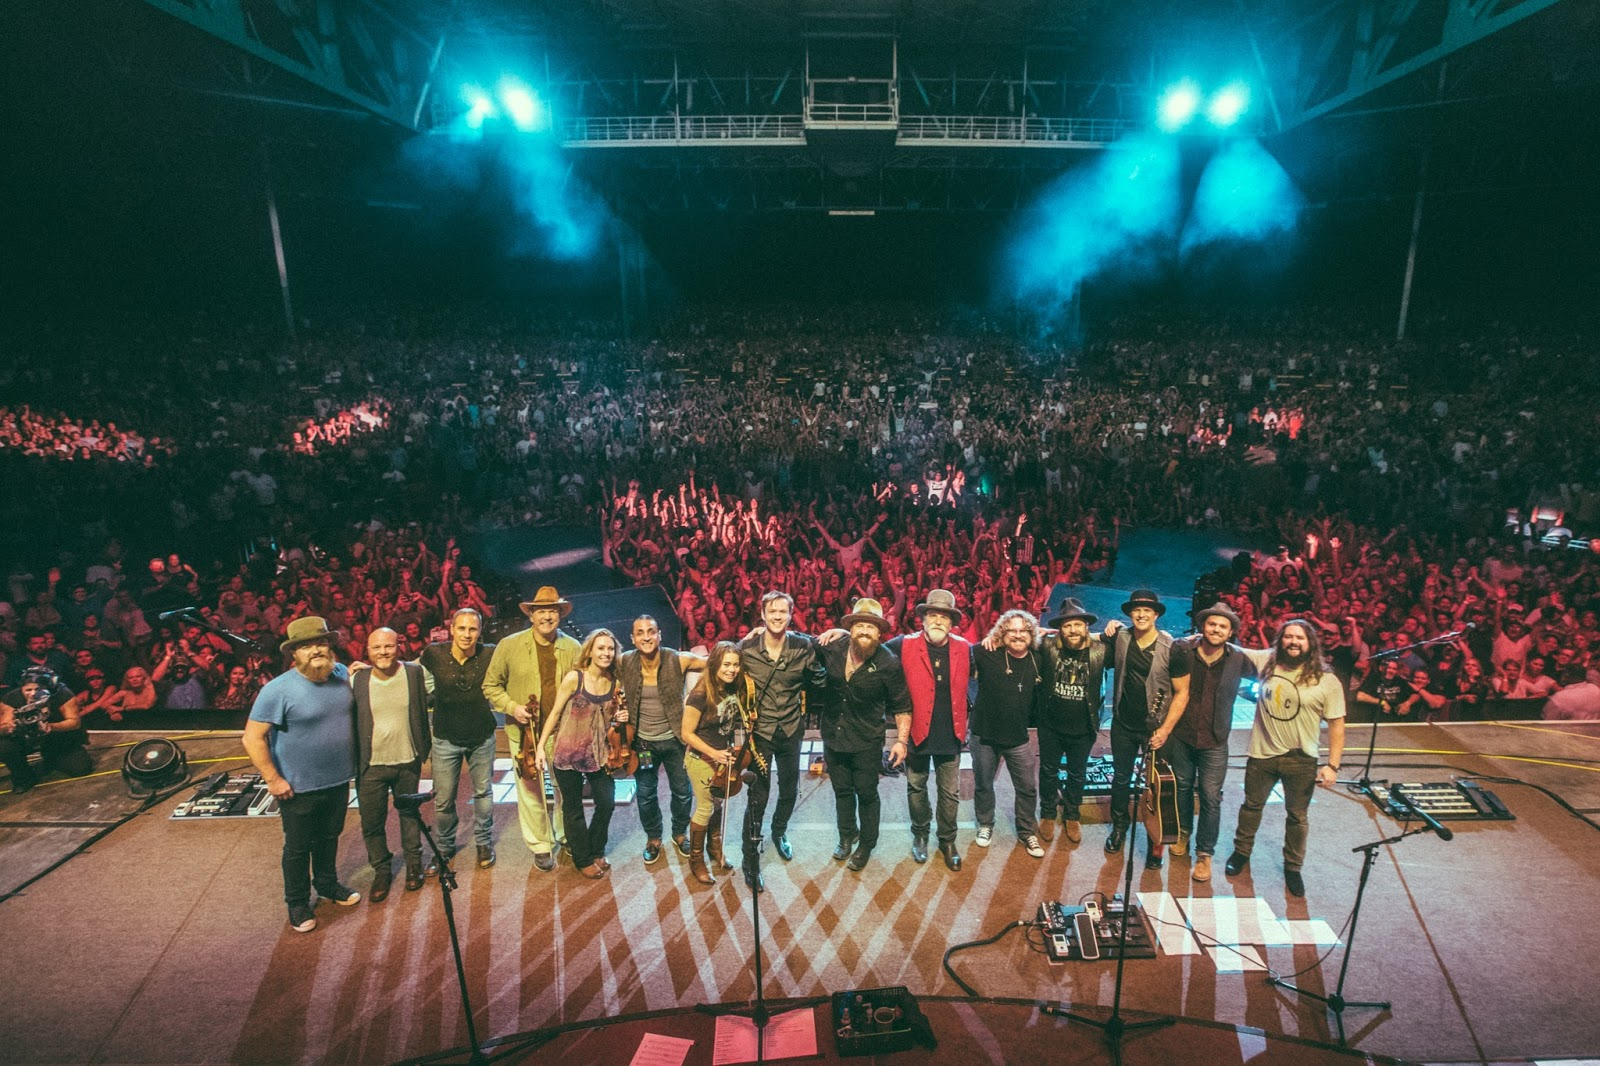 members of zac brown band and o connor band final bows